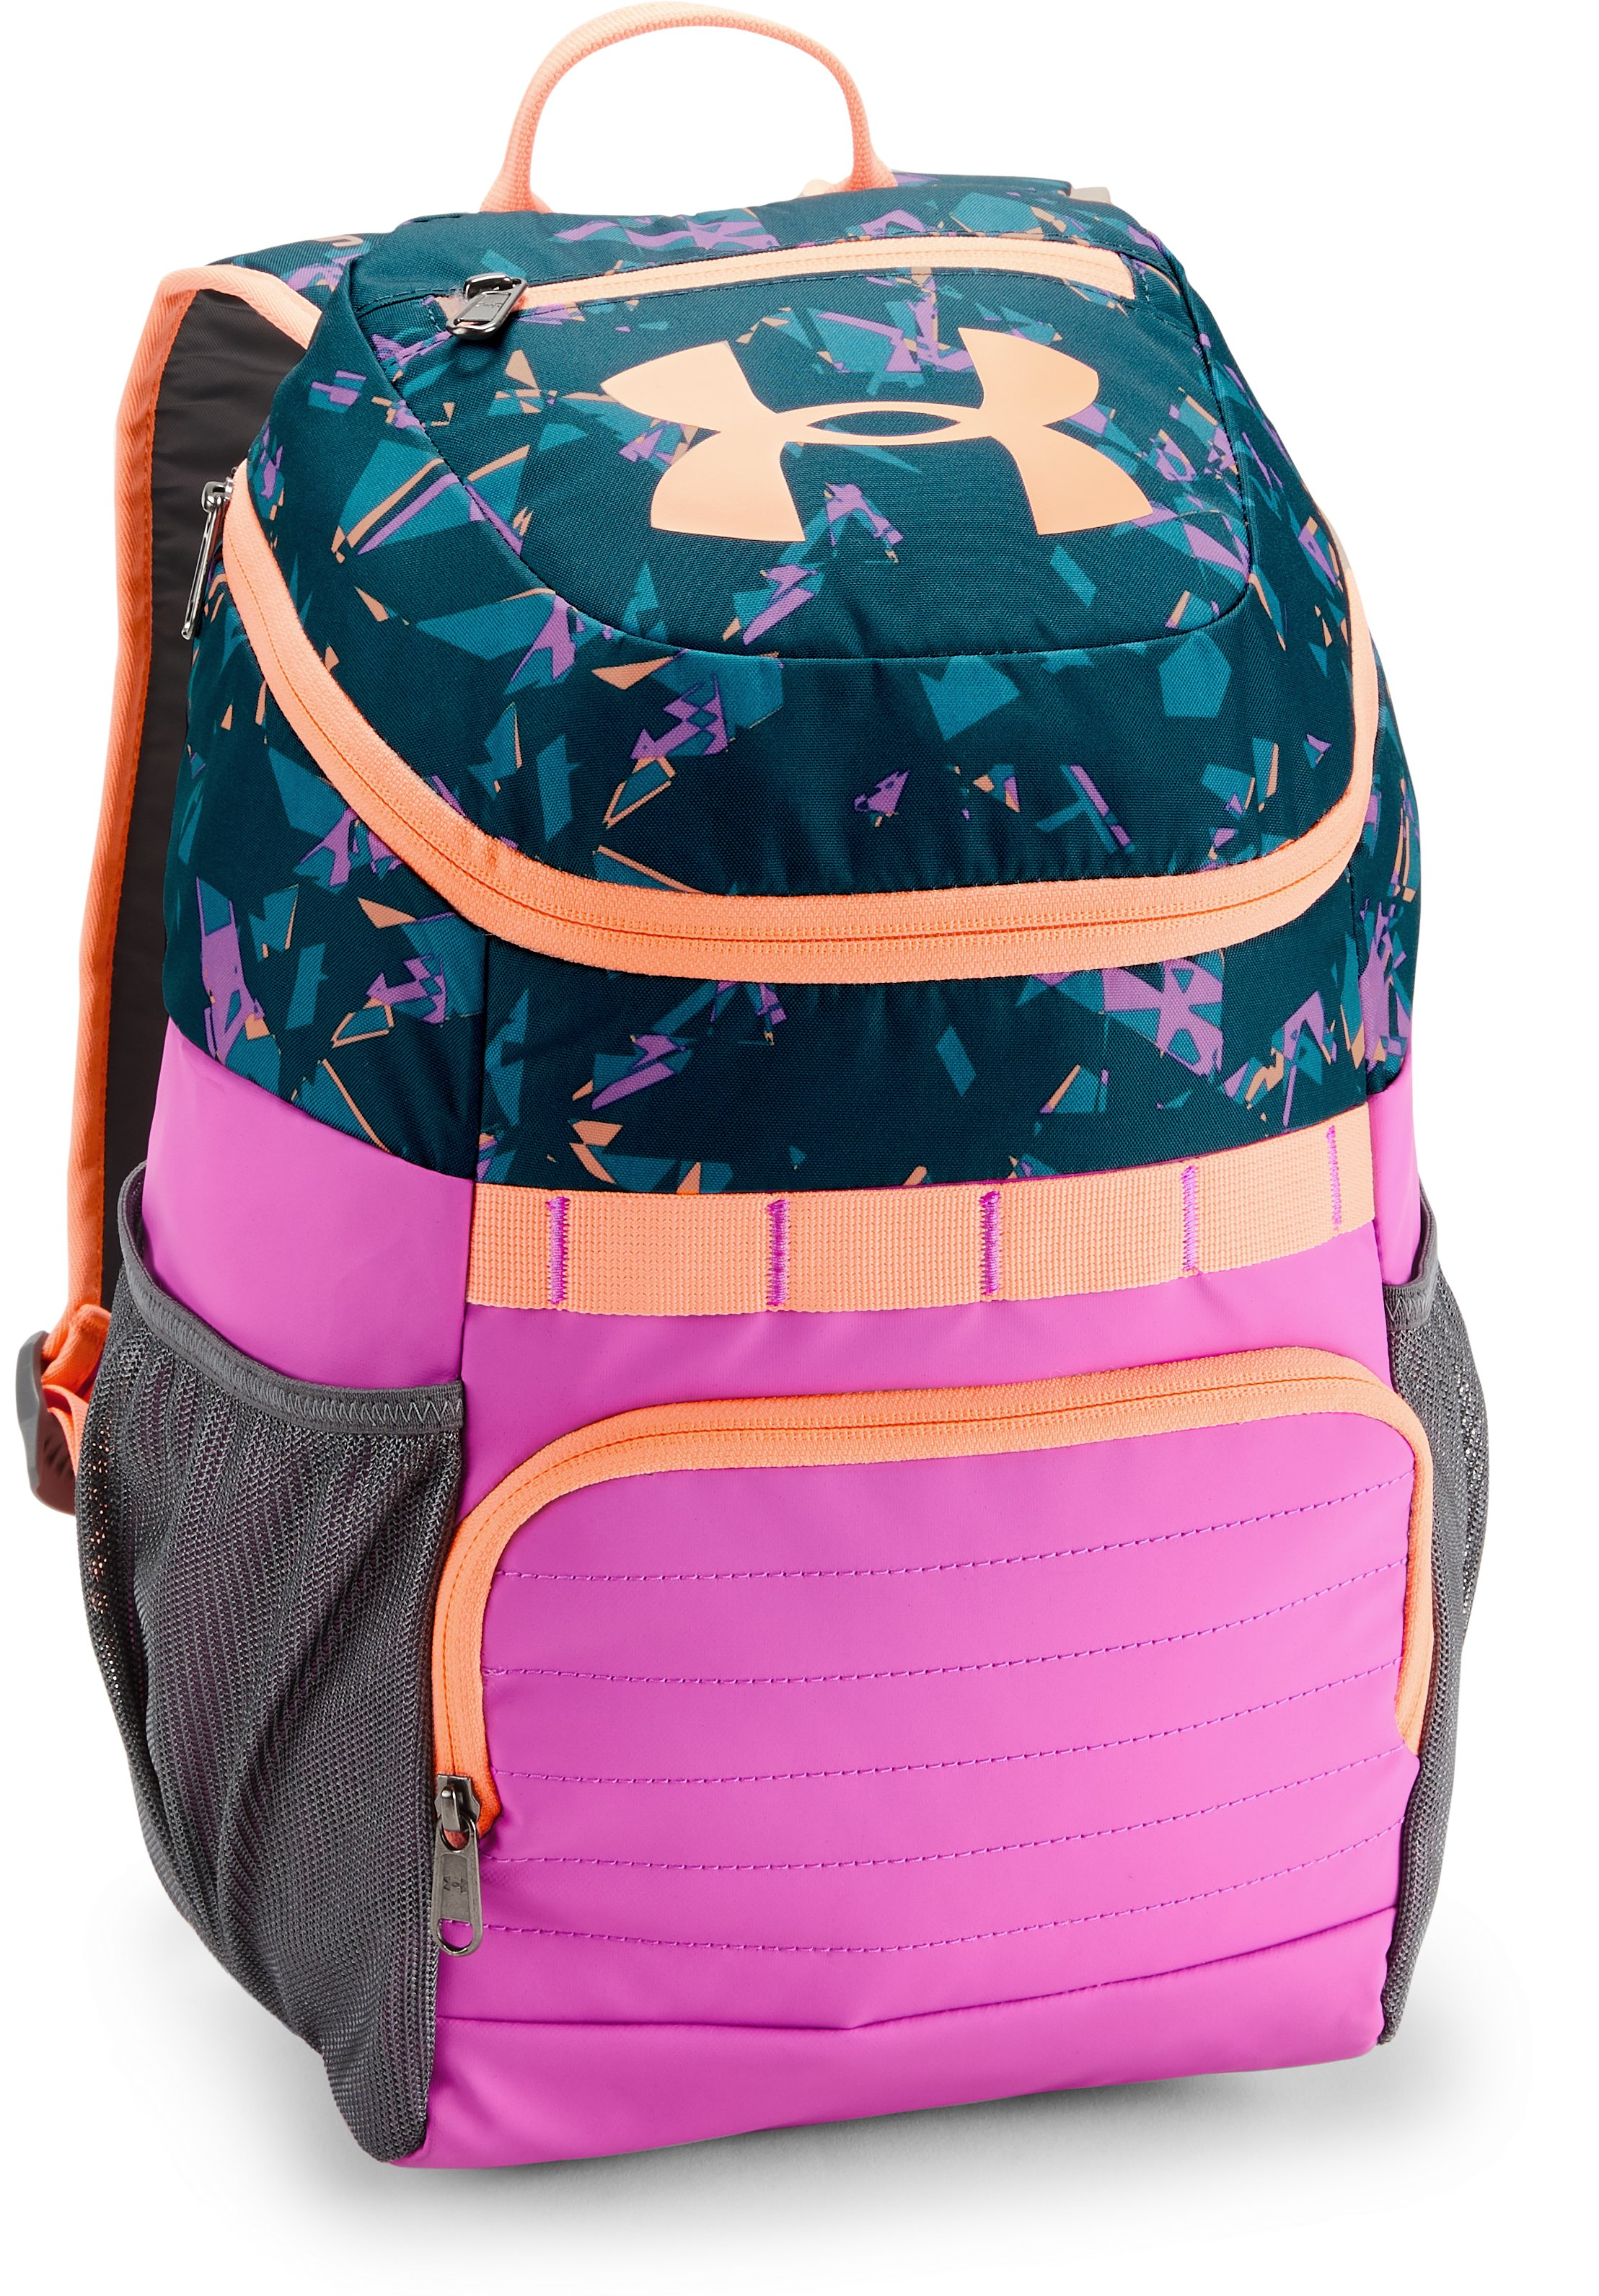 Little Kids Backpacks Under Armour Us